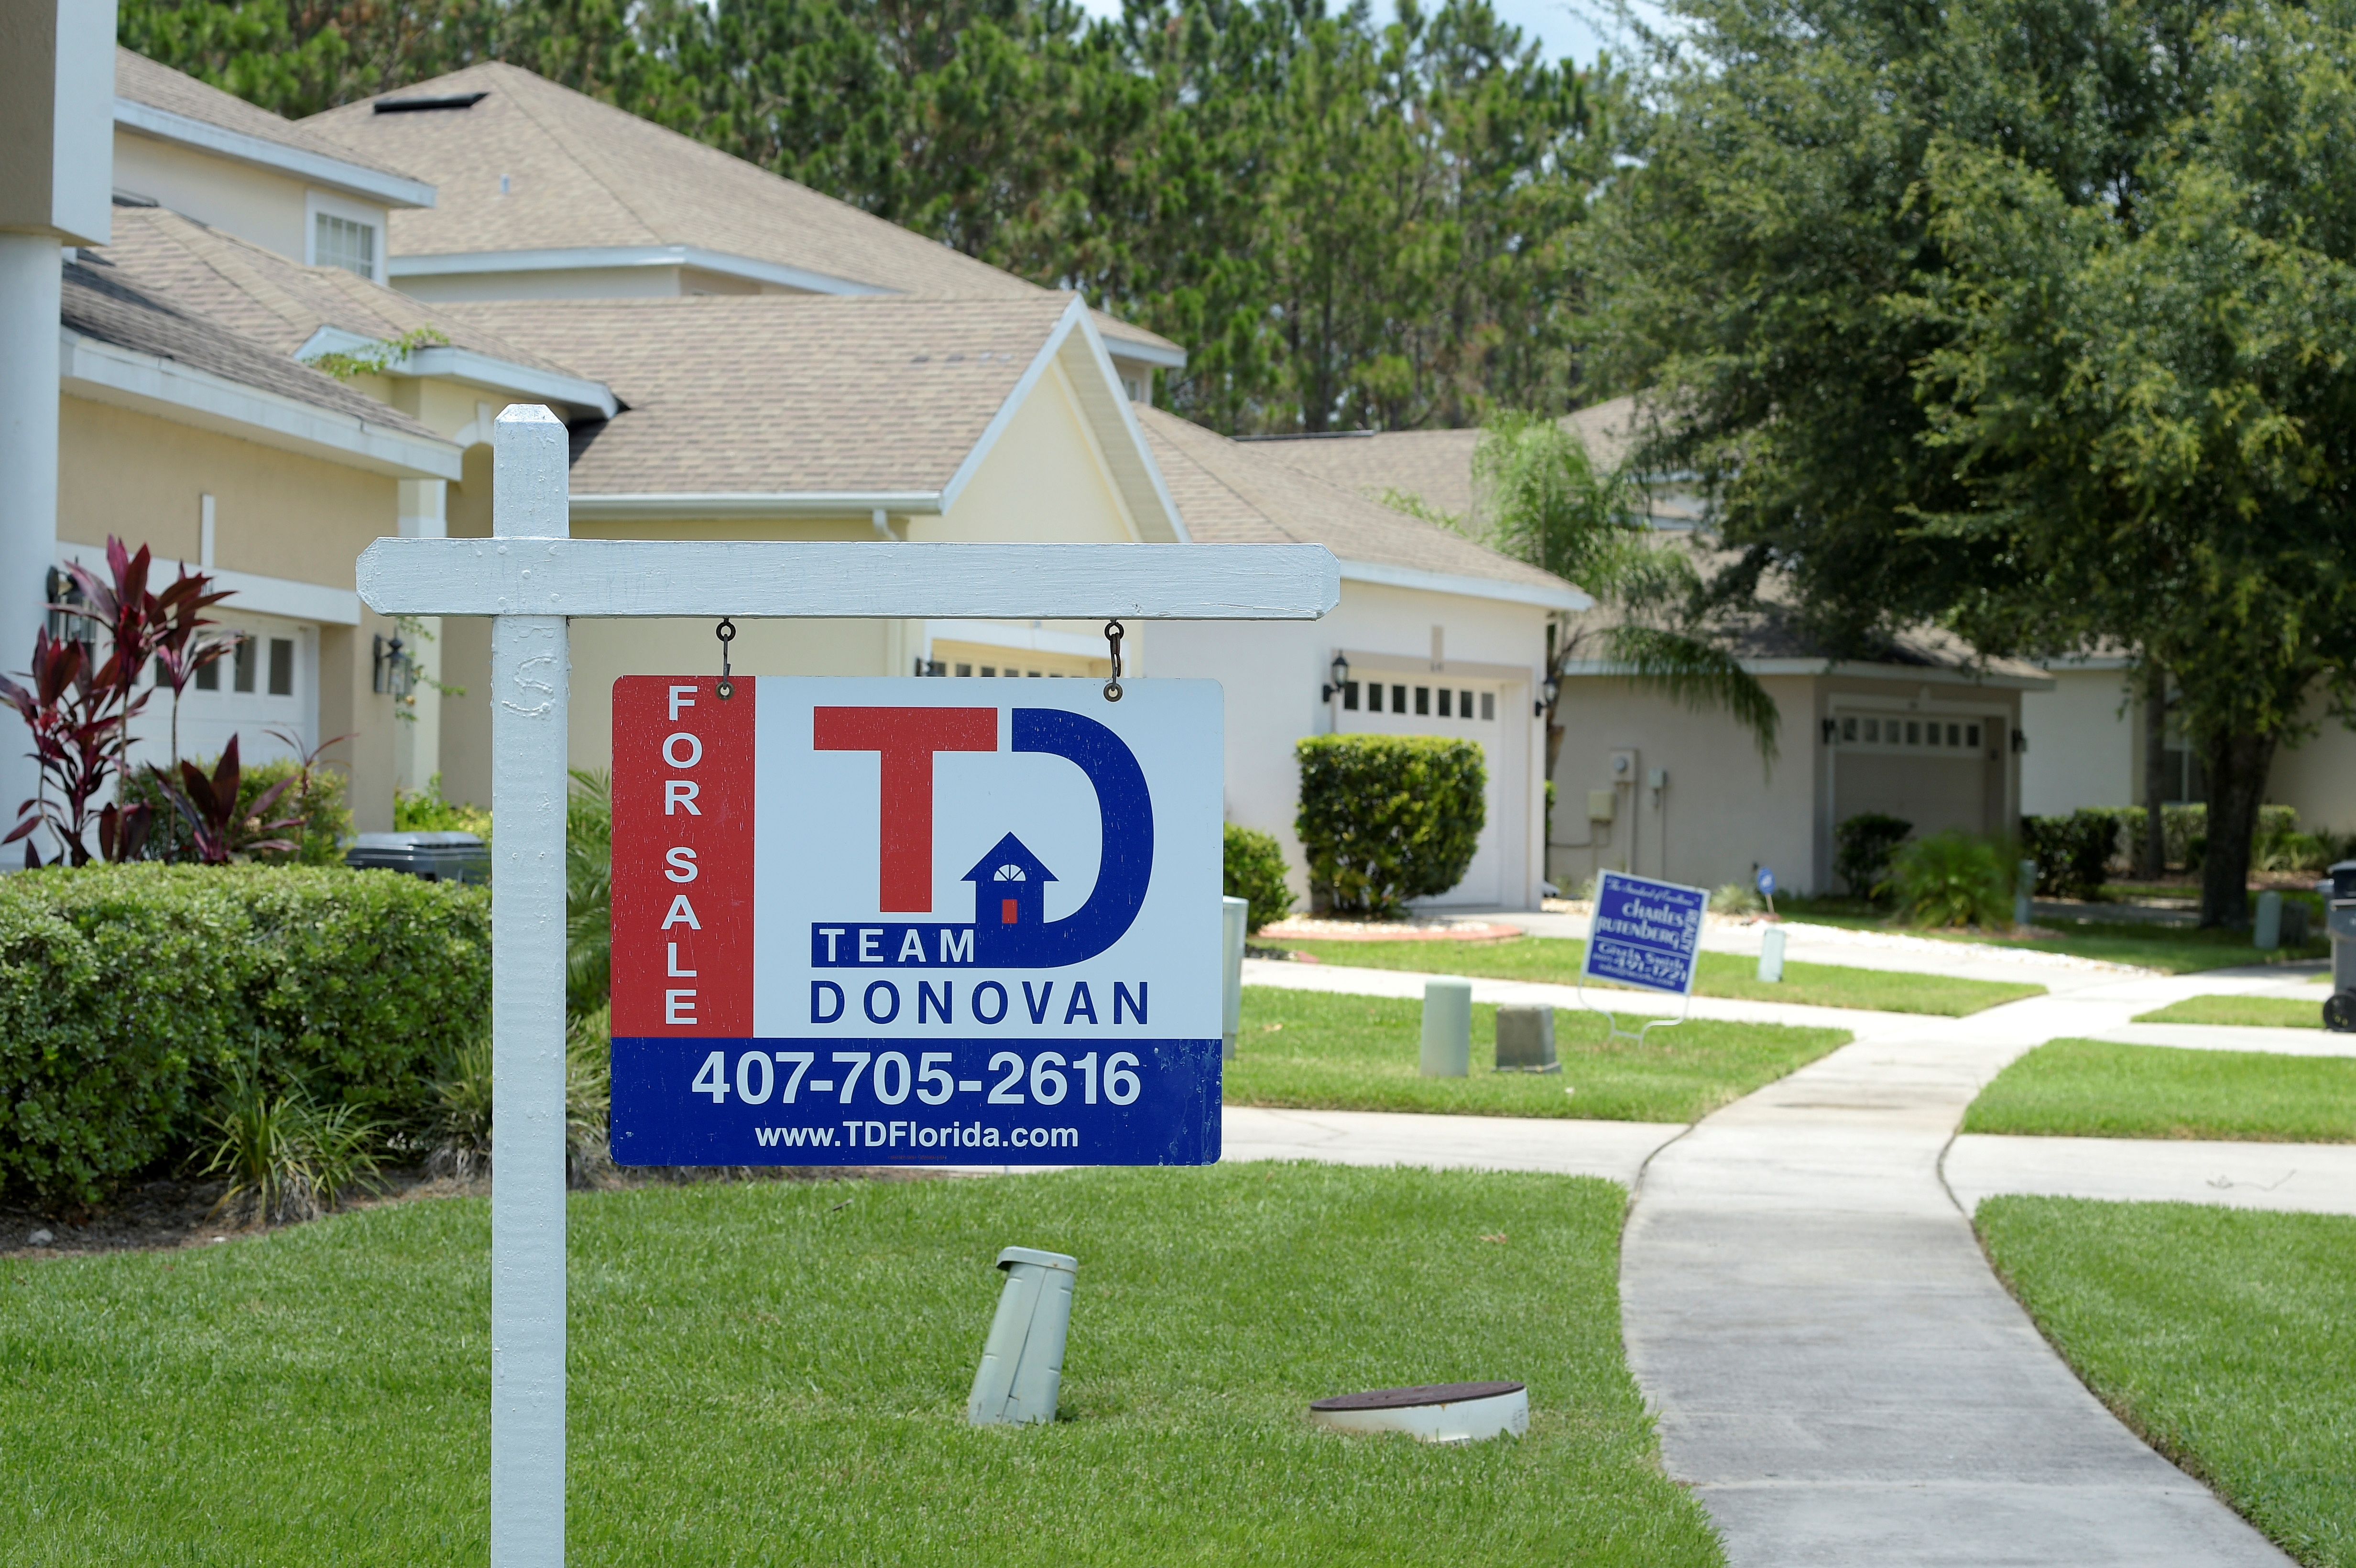 For Sale signs stand in front of houses in a neighborhood where many British people have purchased homes in Davenport, Florida, U.S., June 29, 2016.  Photo taken June 29, 2016. REUTERS/Phelan Ebenhack